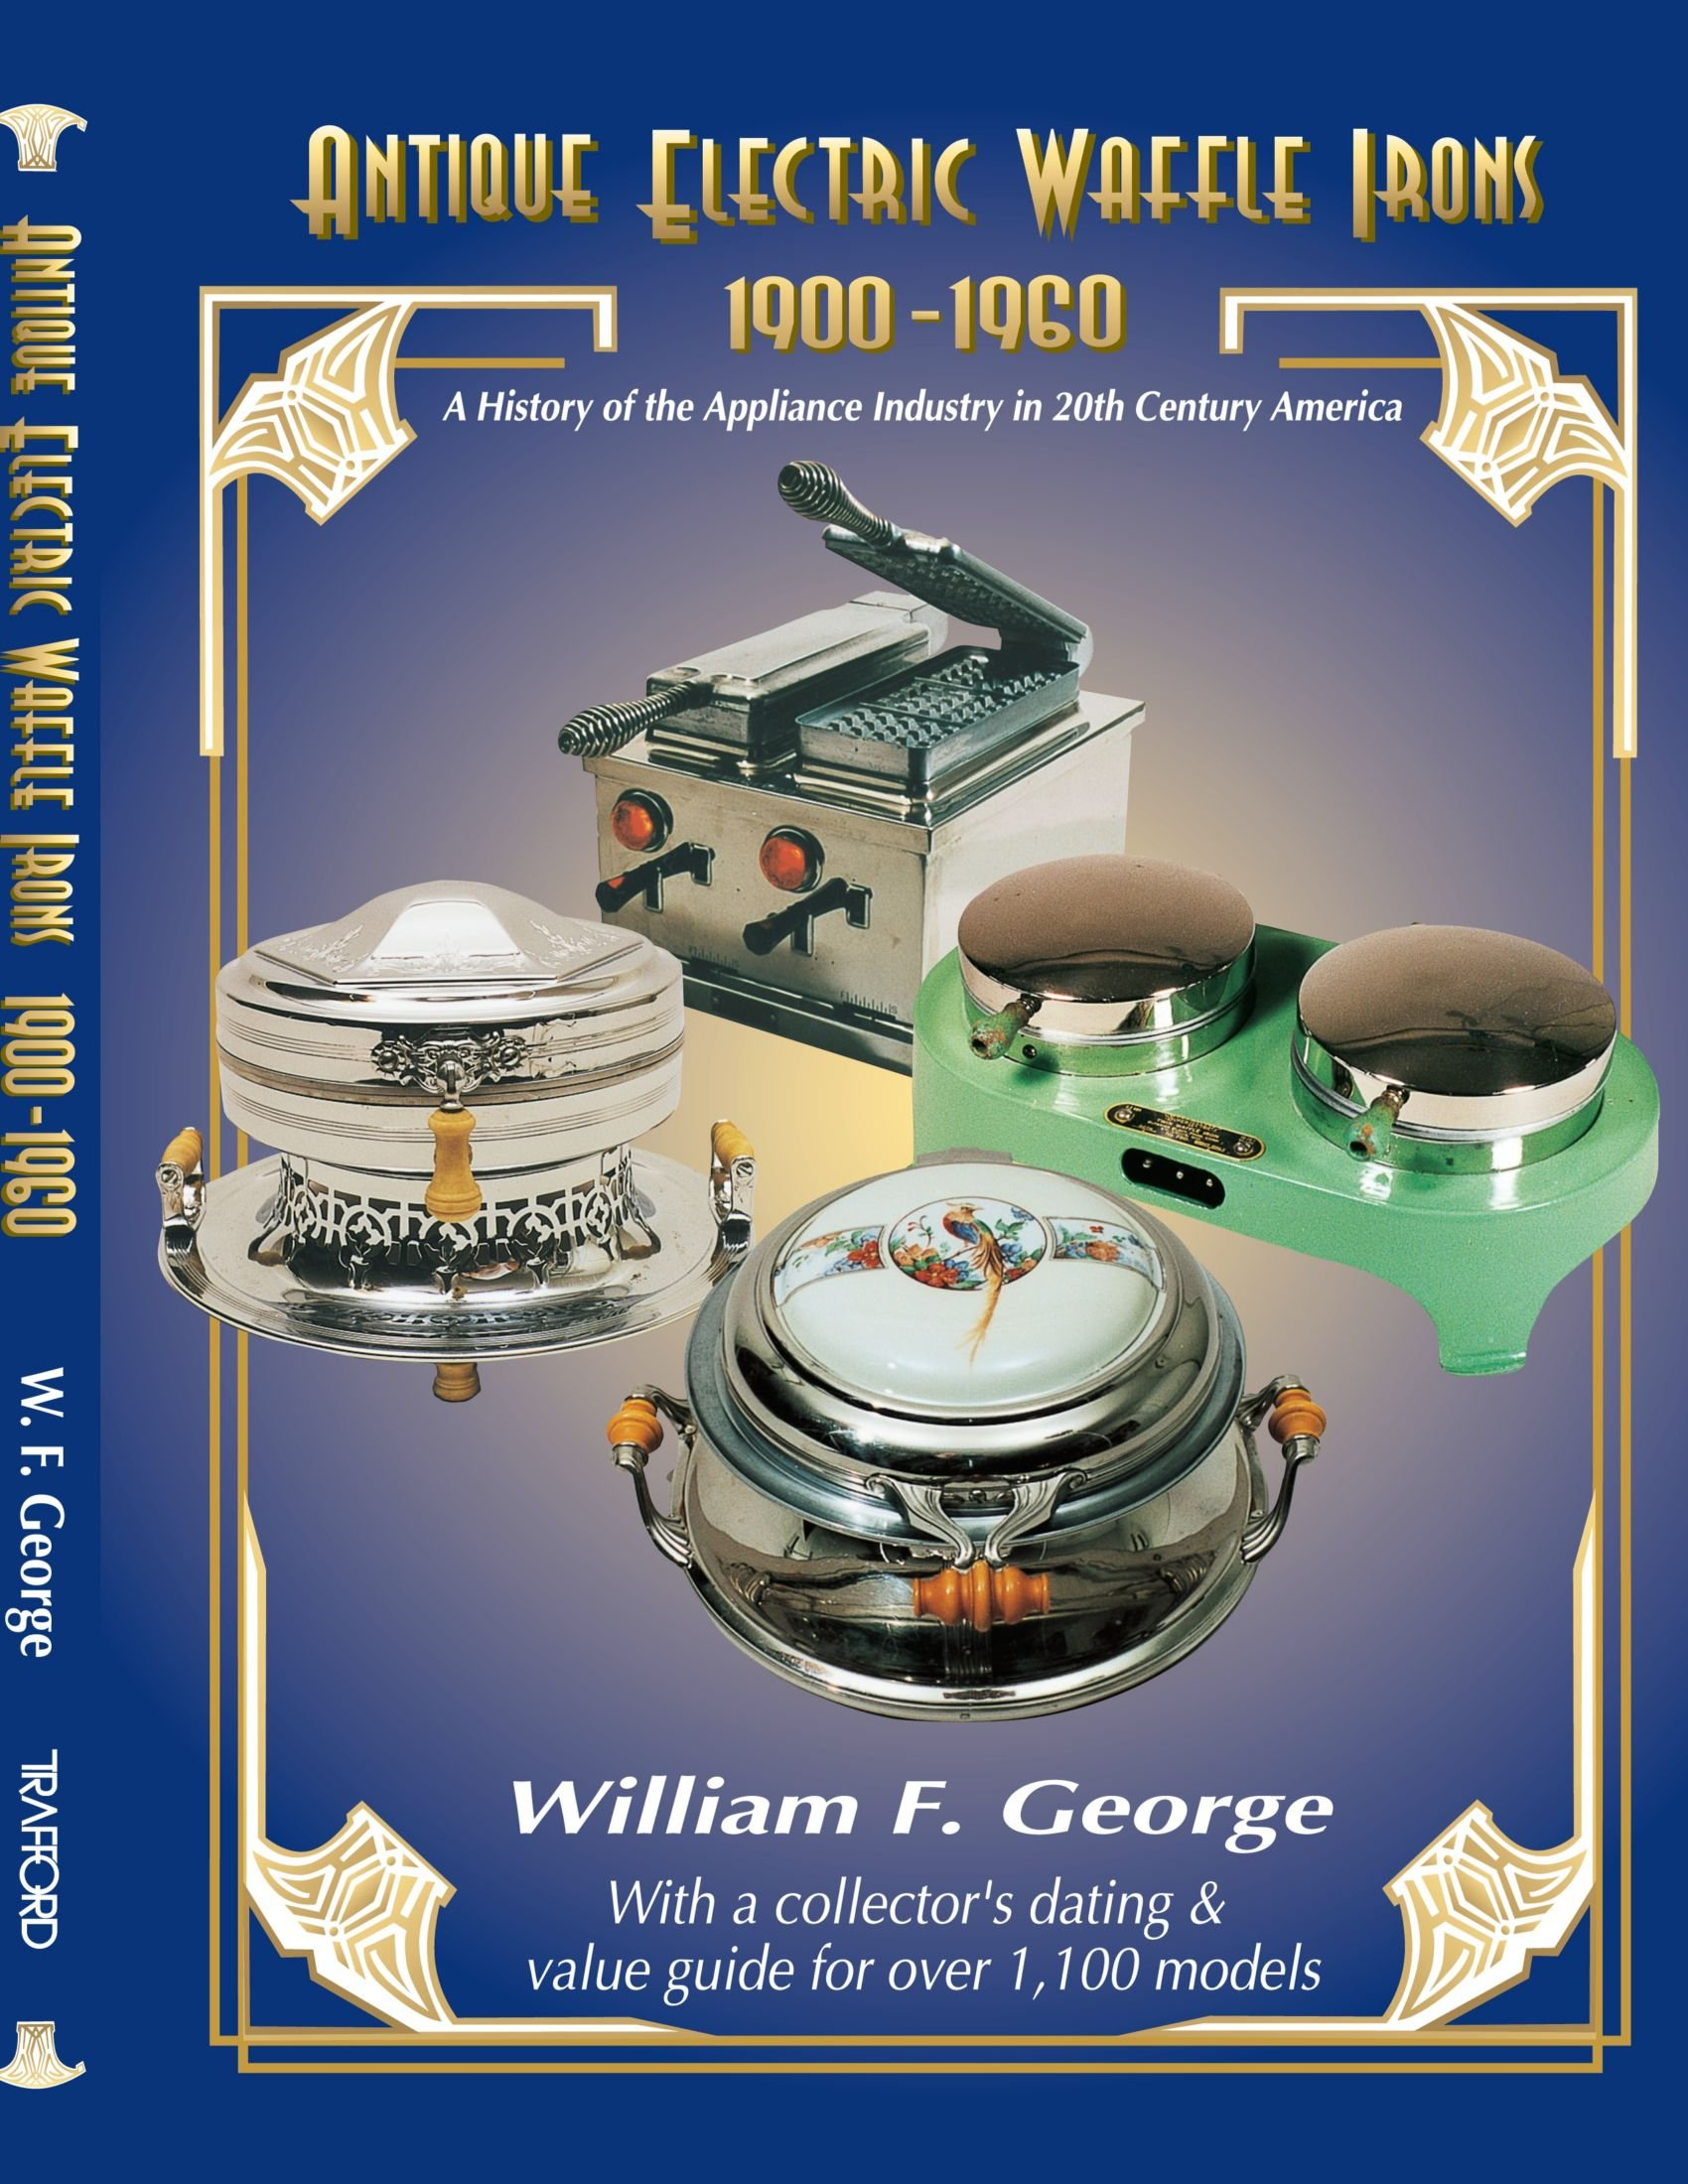 Download Antique Electric Waffle Irons 1900-1960: A History of the Appliance Industry in 20th Century America pdf epub